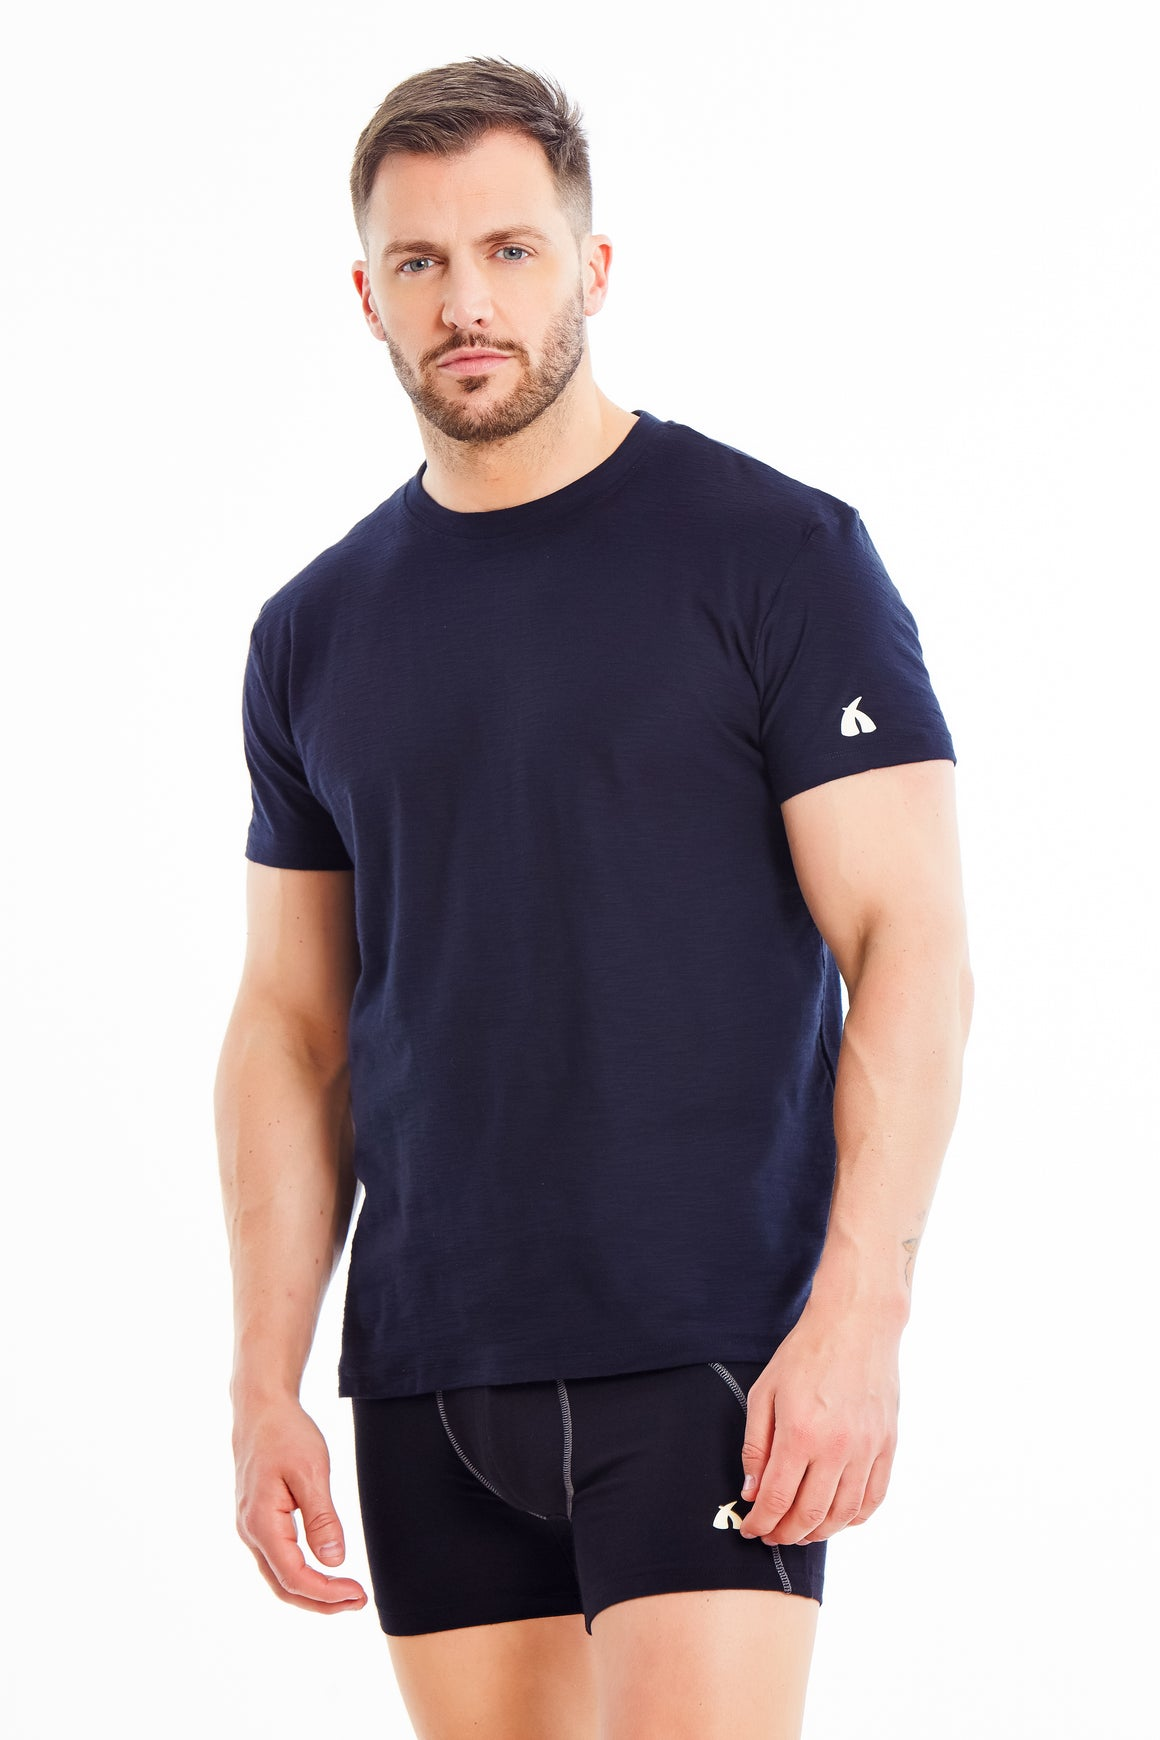 Luxury 100% Cotton T-Shirt + Boxer Brief Offer!